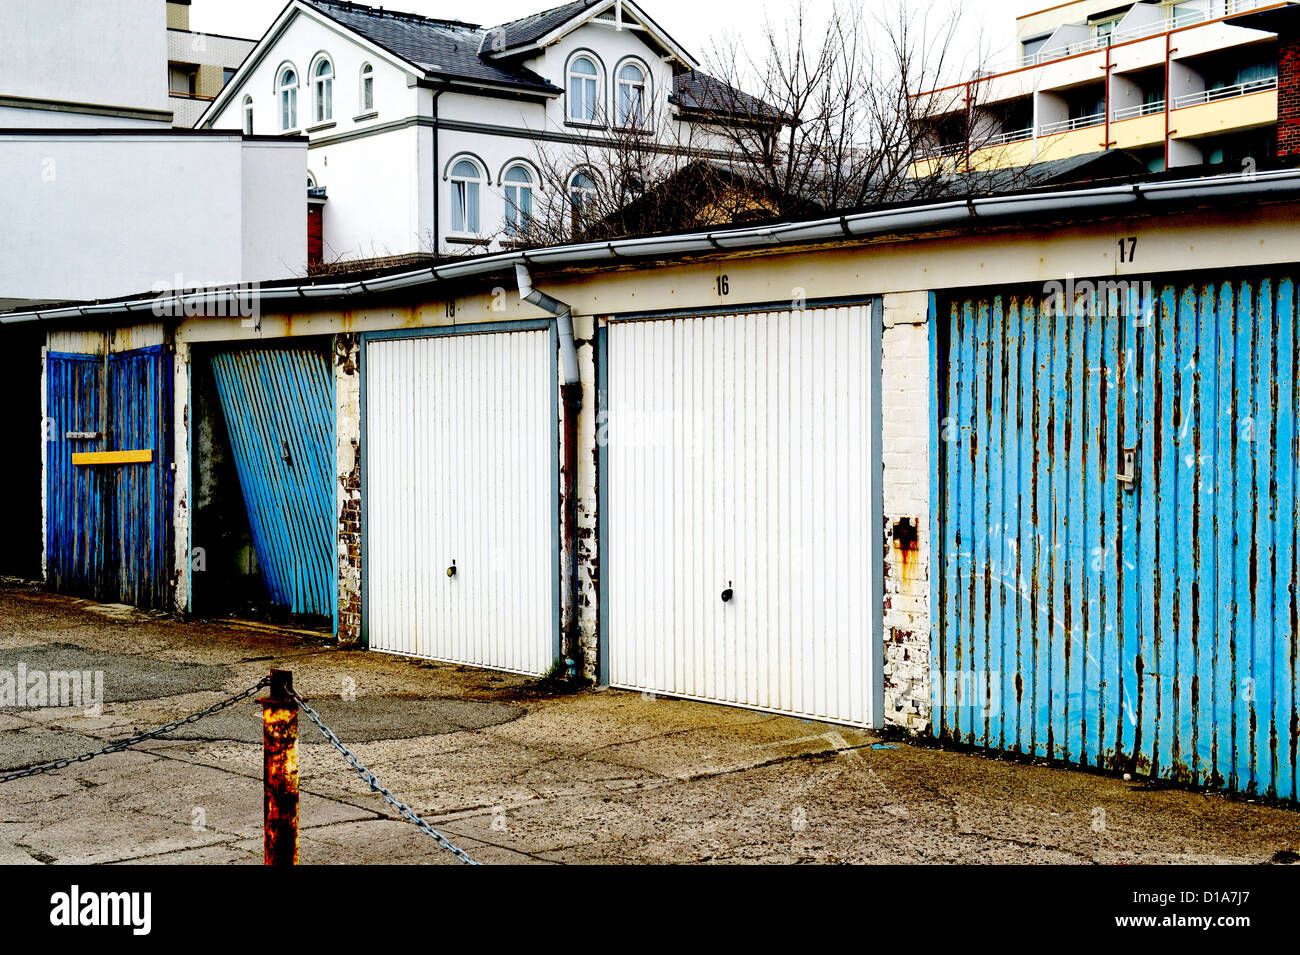 Hinterhof - Stock Image